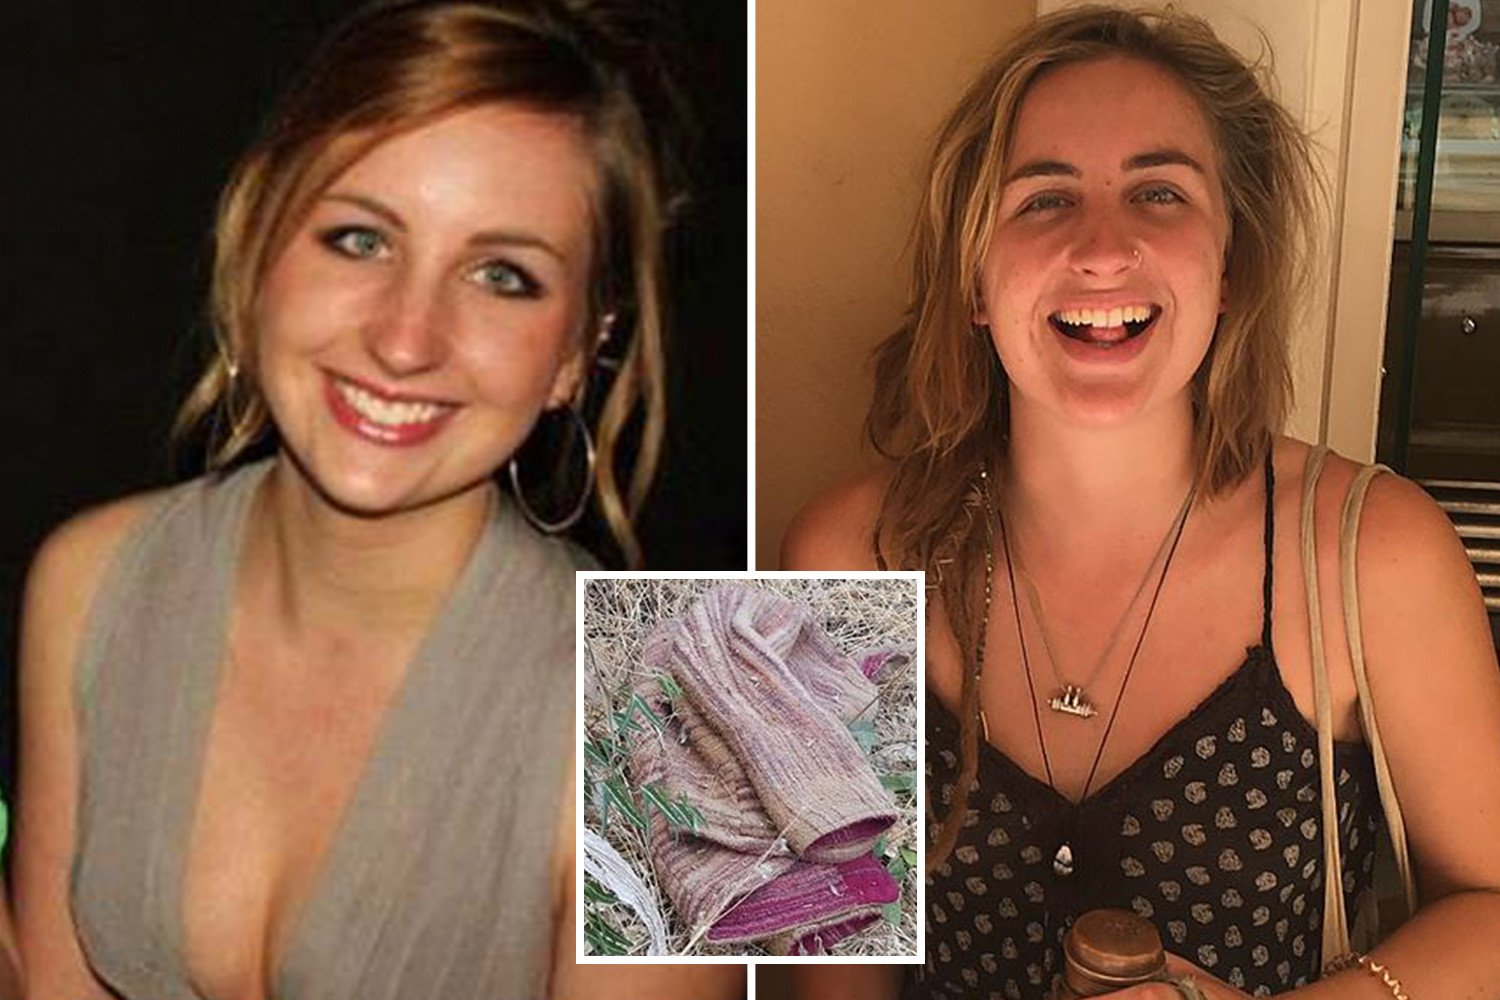 Heartbreak as body of missing Brit backpacker Catherine Shaw is found after she vanished from Guatemala hotel at 5am